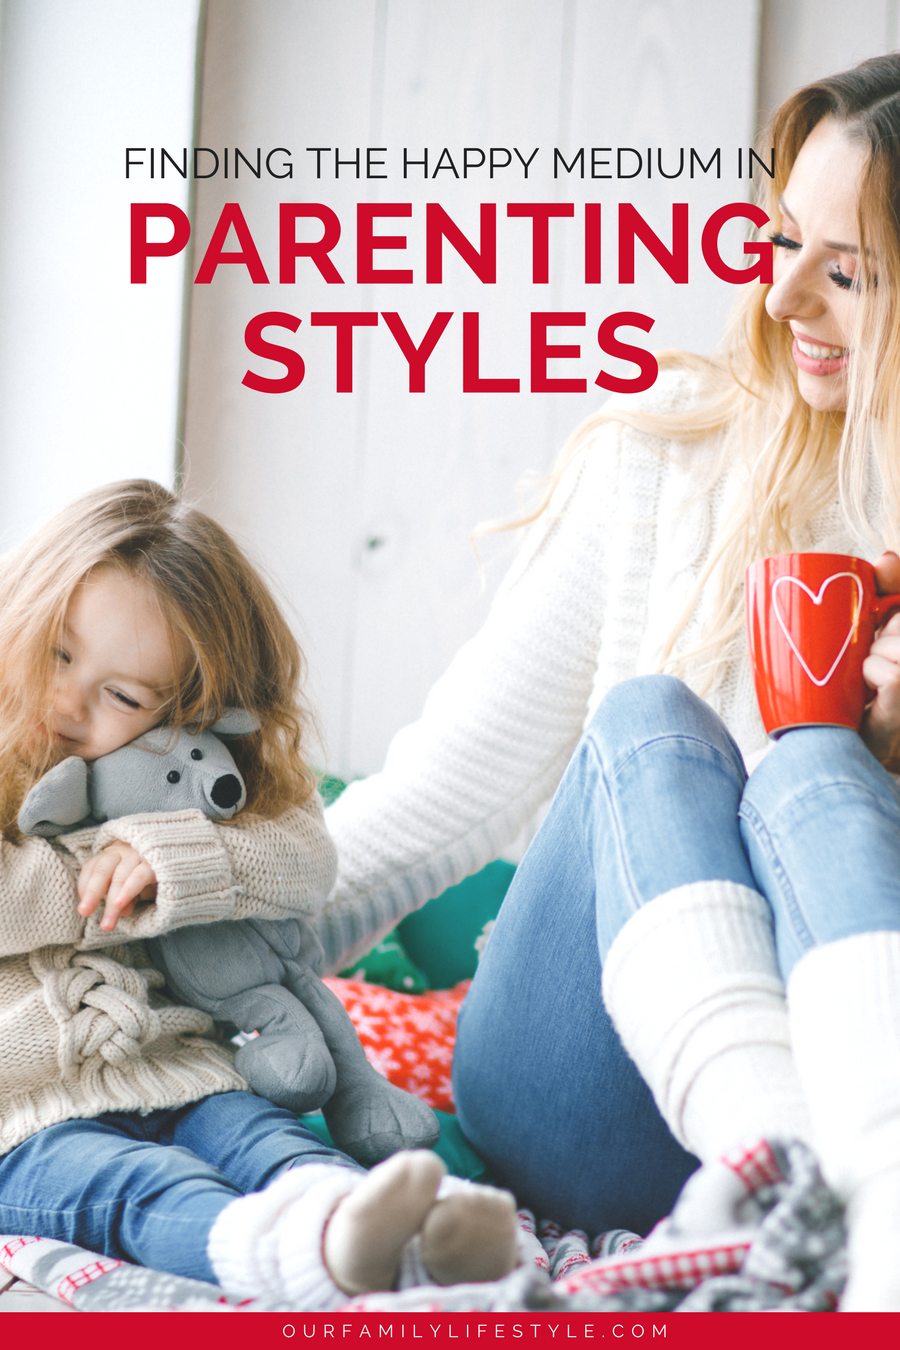 Finding the Happy Medium in Parenting Styles